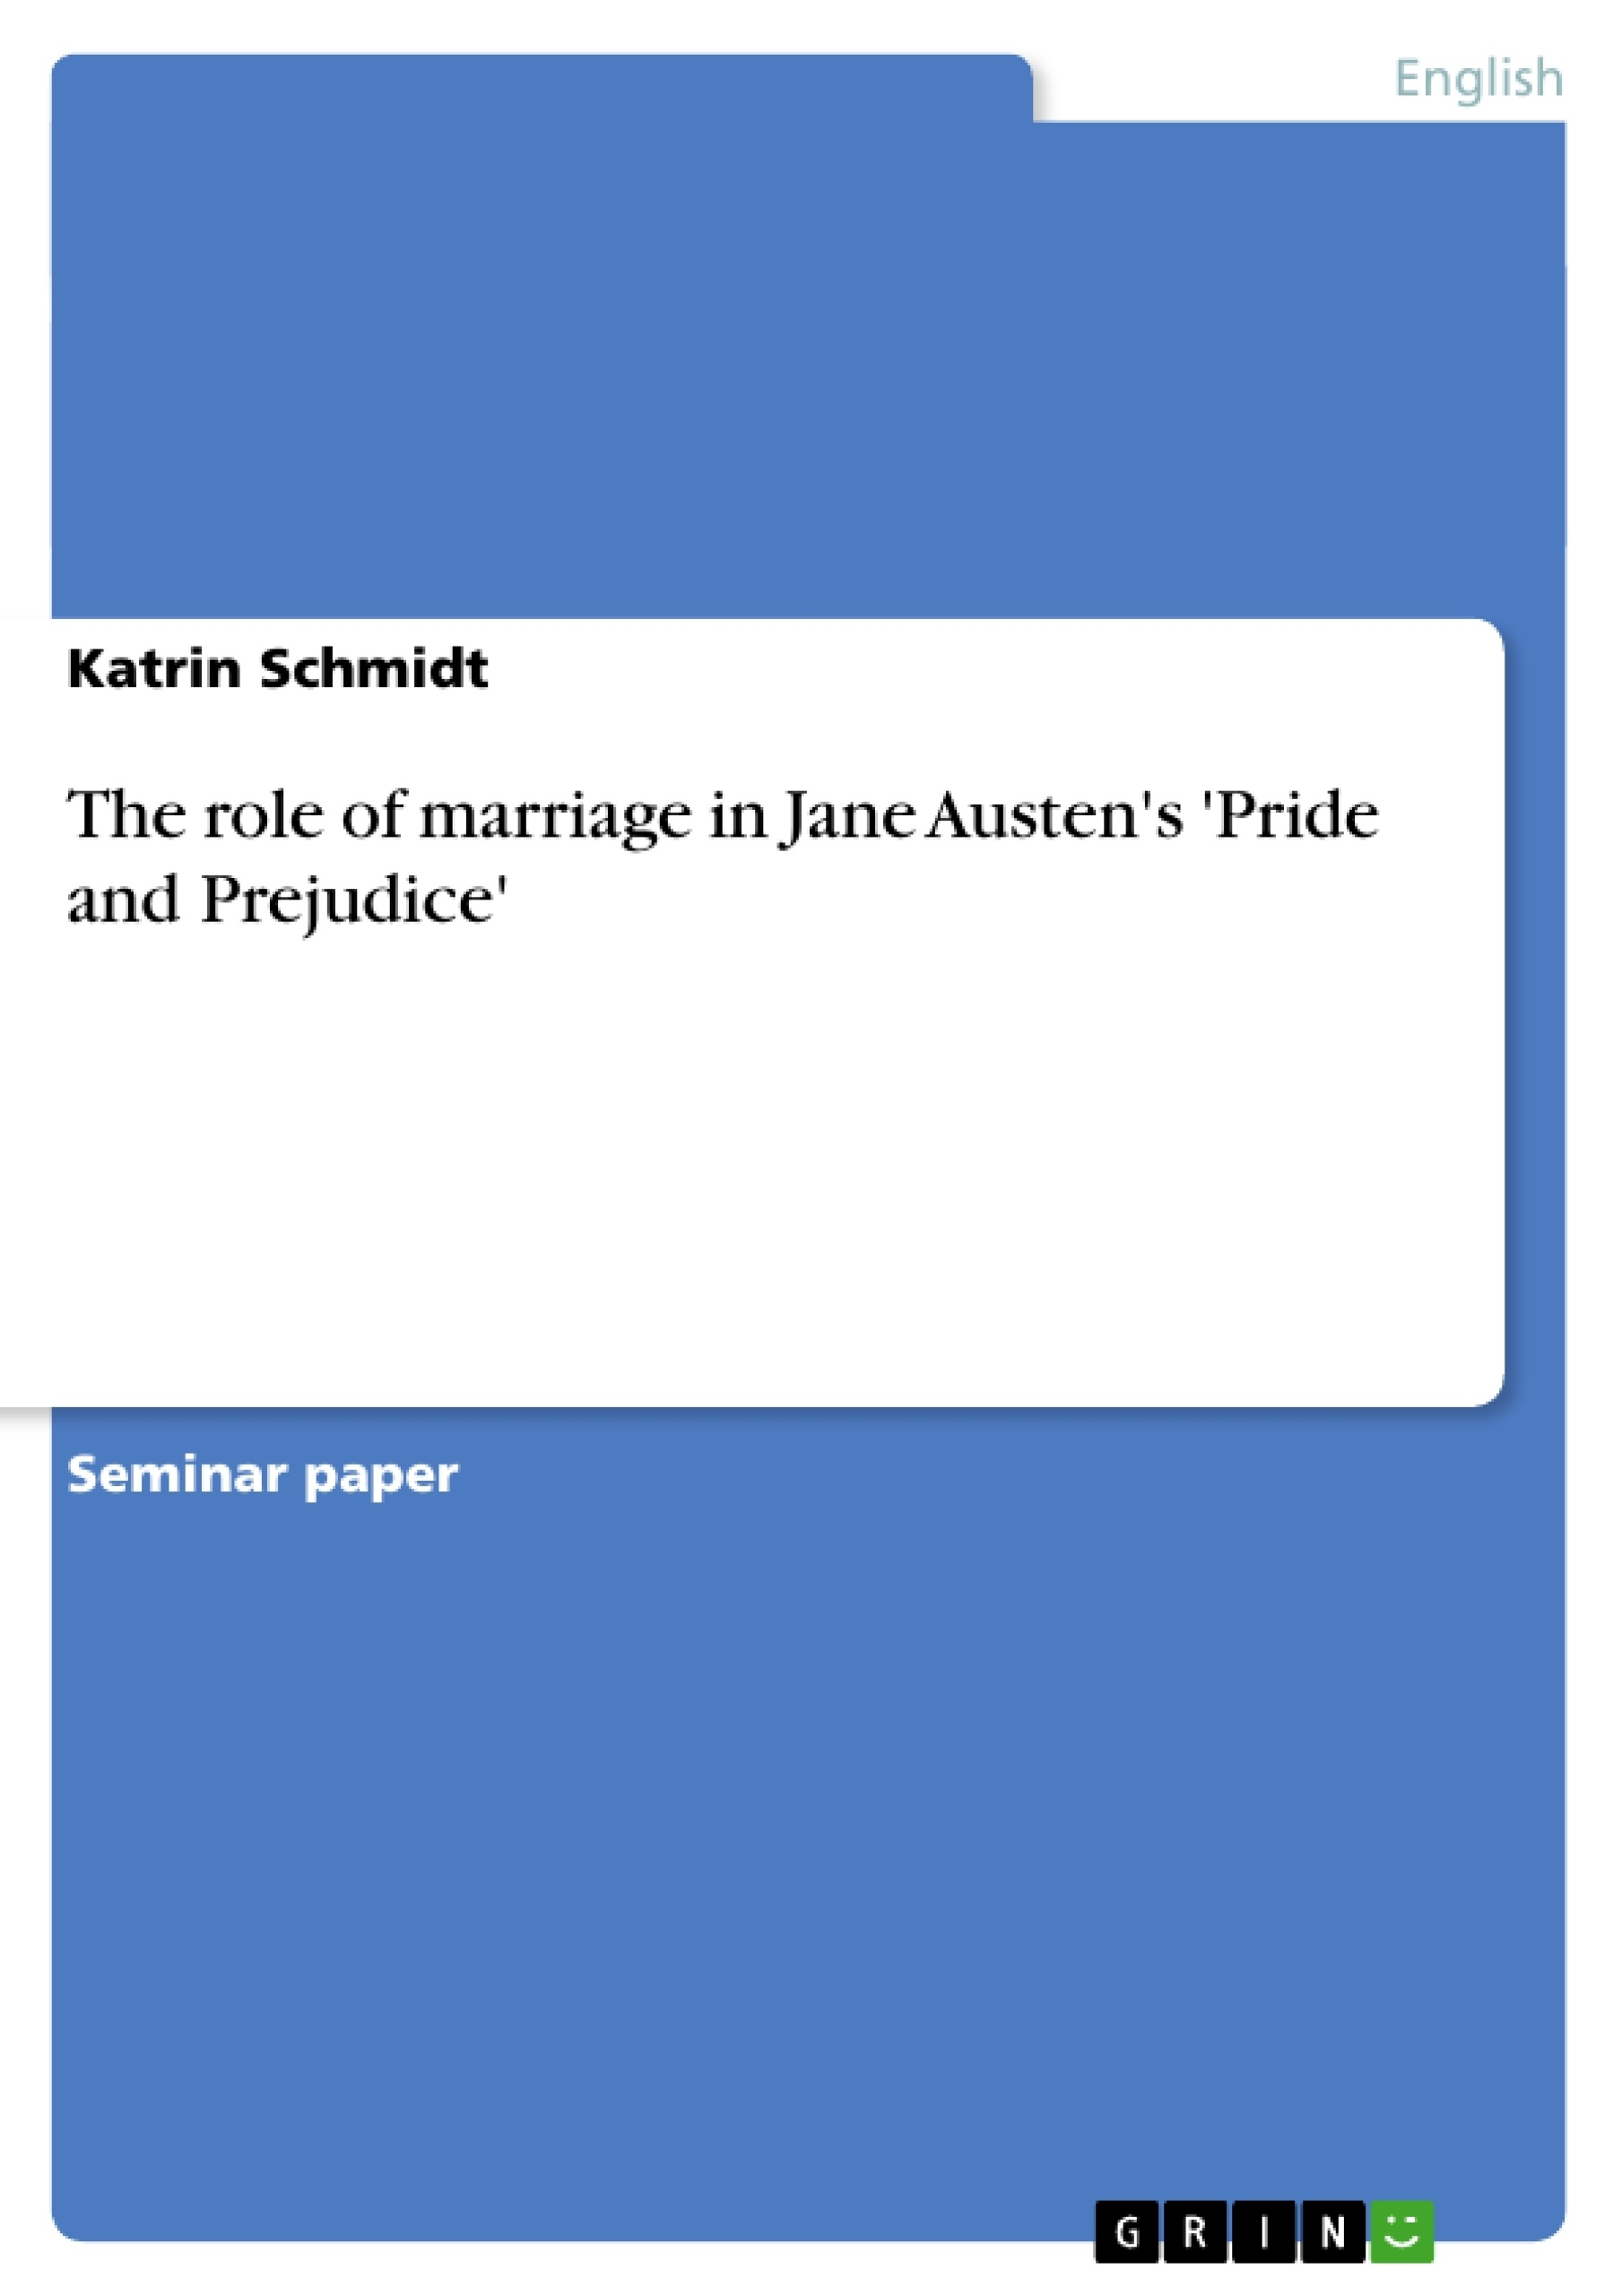 the role of marriage in jane austen s pride and prejudice upload your own papers earn money and win an iphone 7